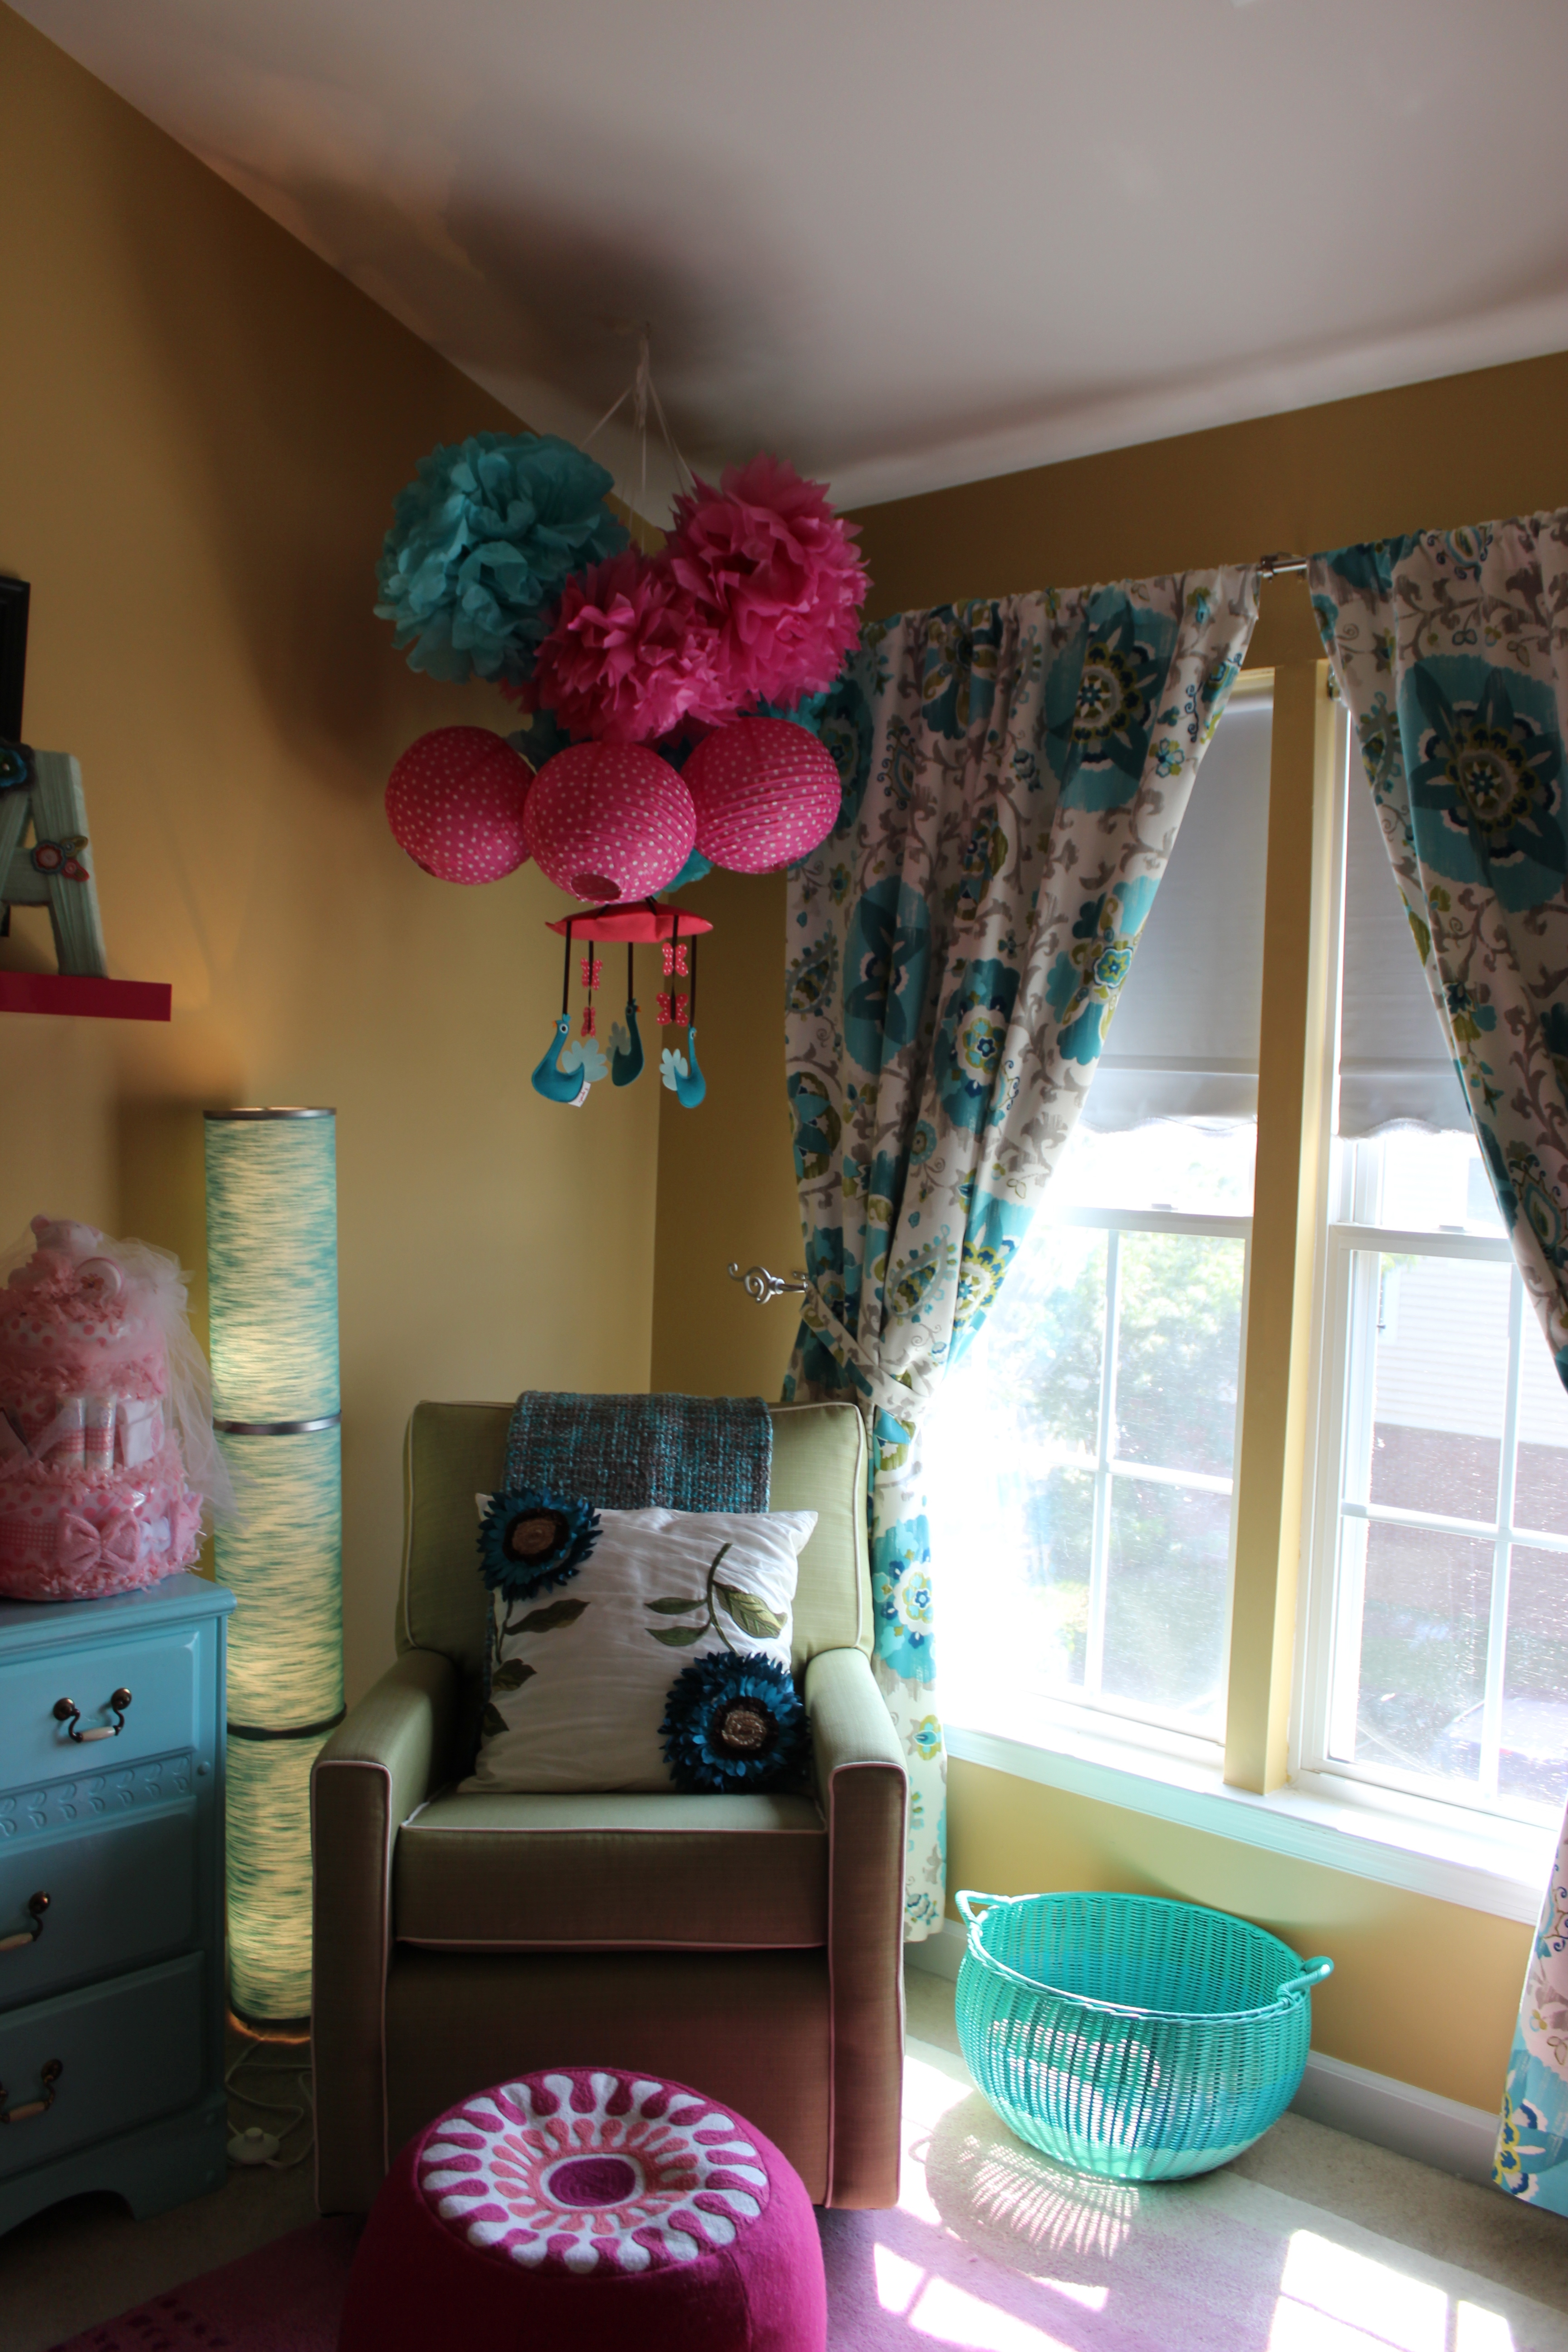 Toddler Nursery A Teal And Pink Nursery - Project Nursery